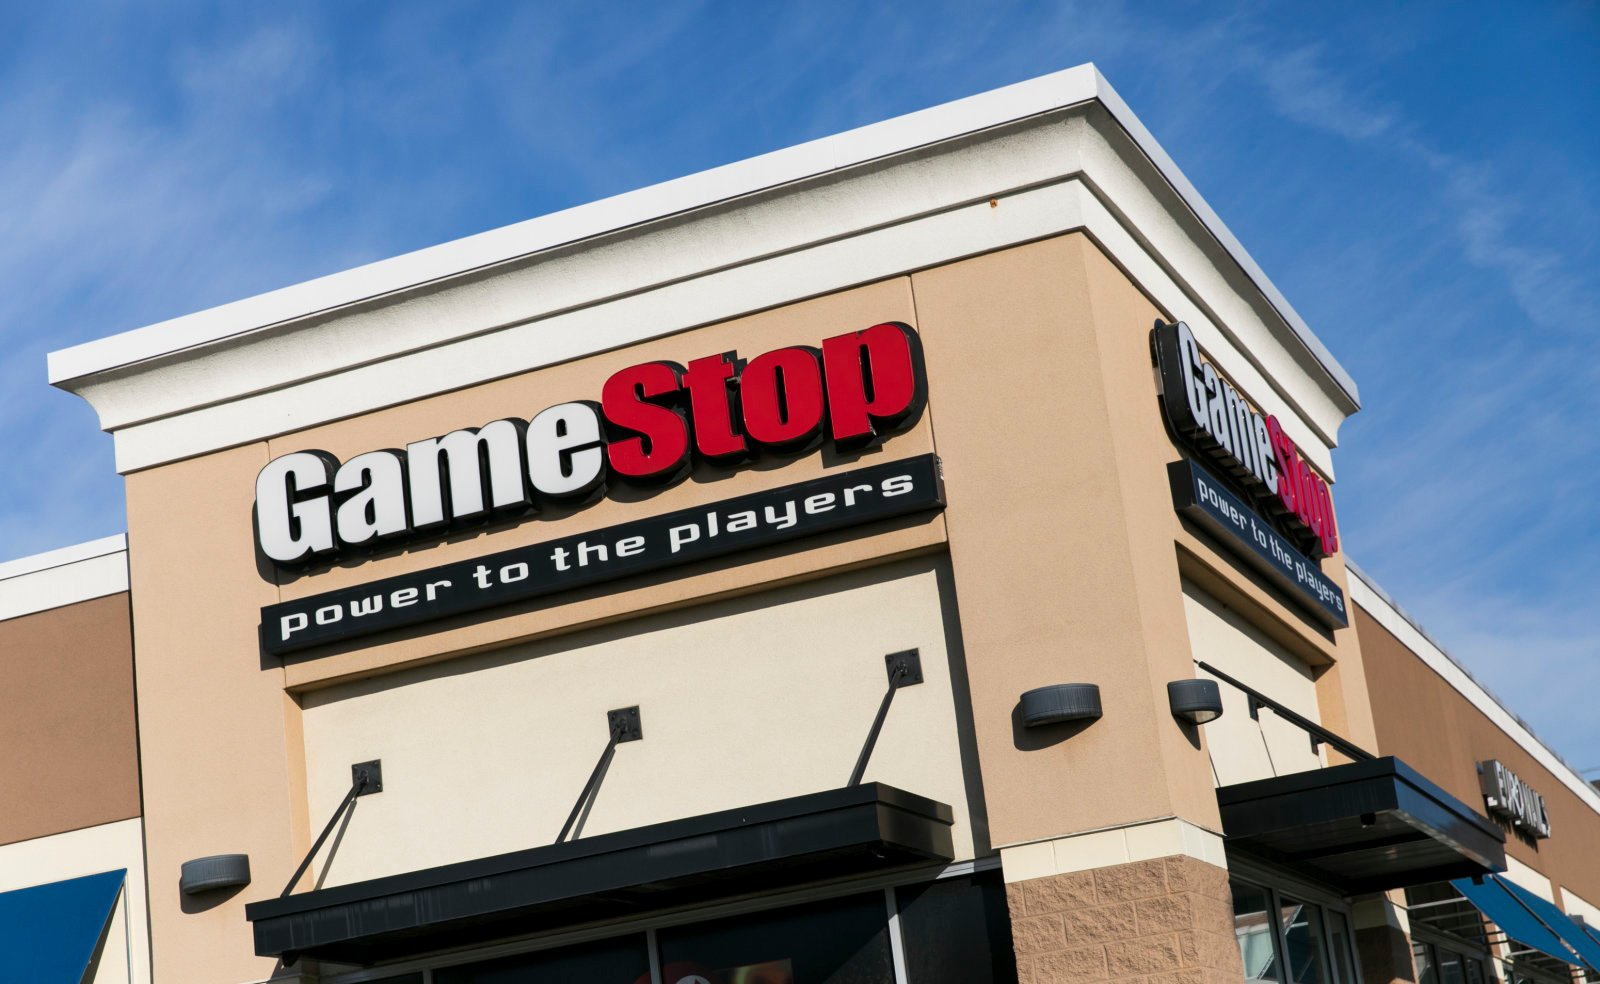 Now GameStop employees will badger you while holding a Microsoft Surface screenshot